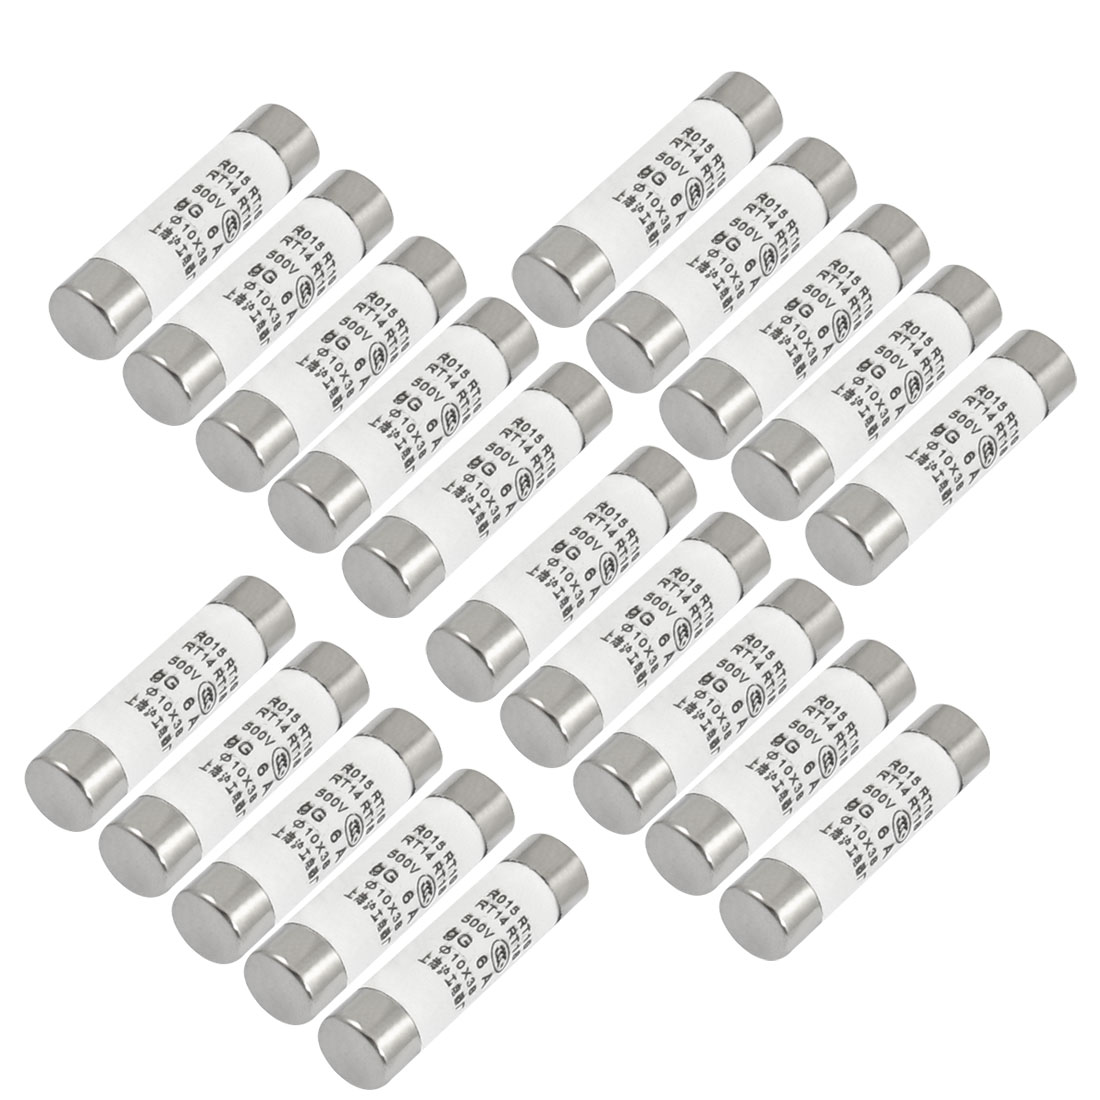 20 Pcs RO15 Series 500V 6A Cylinder Cap Ceramic Fast Blow Fuse Links 10x38mm